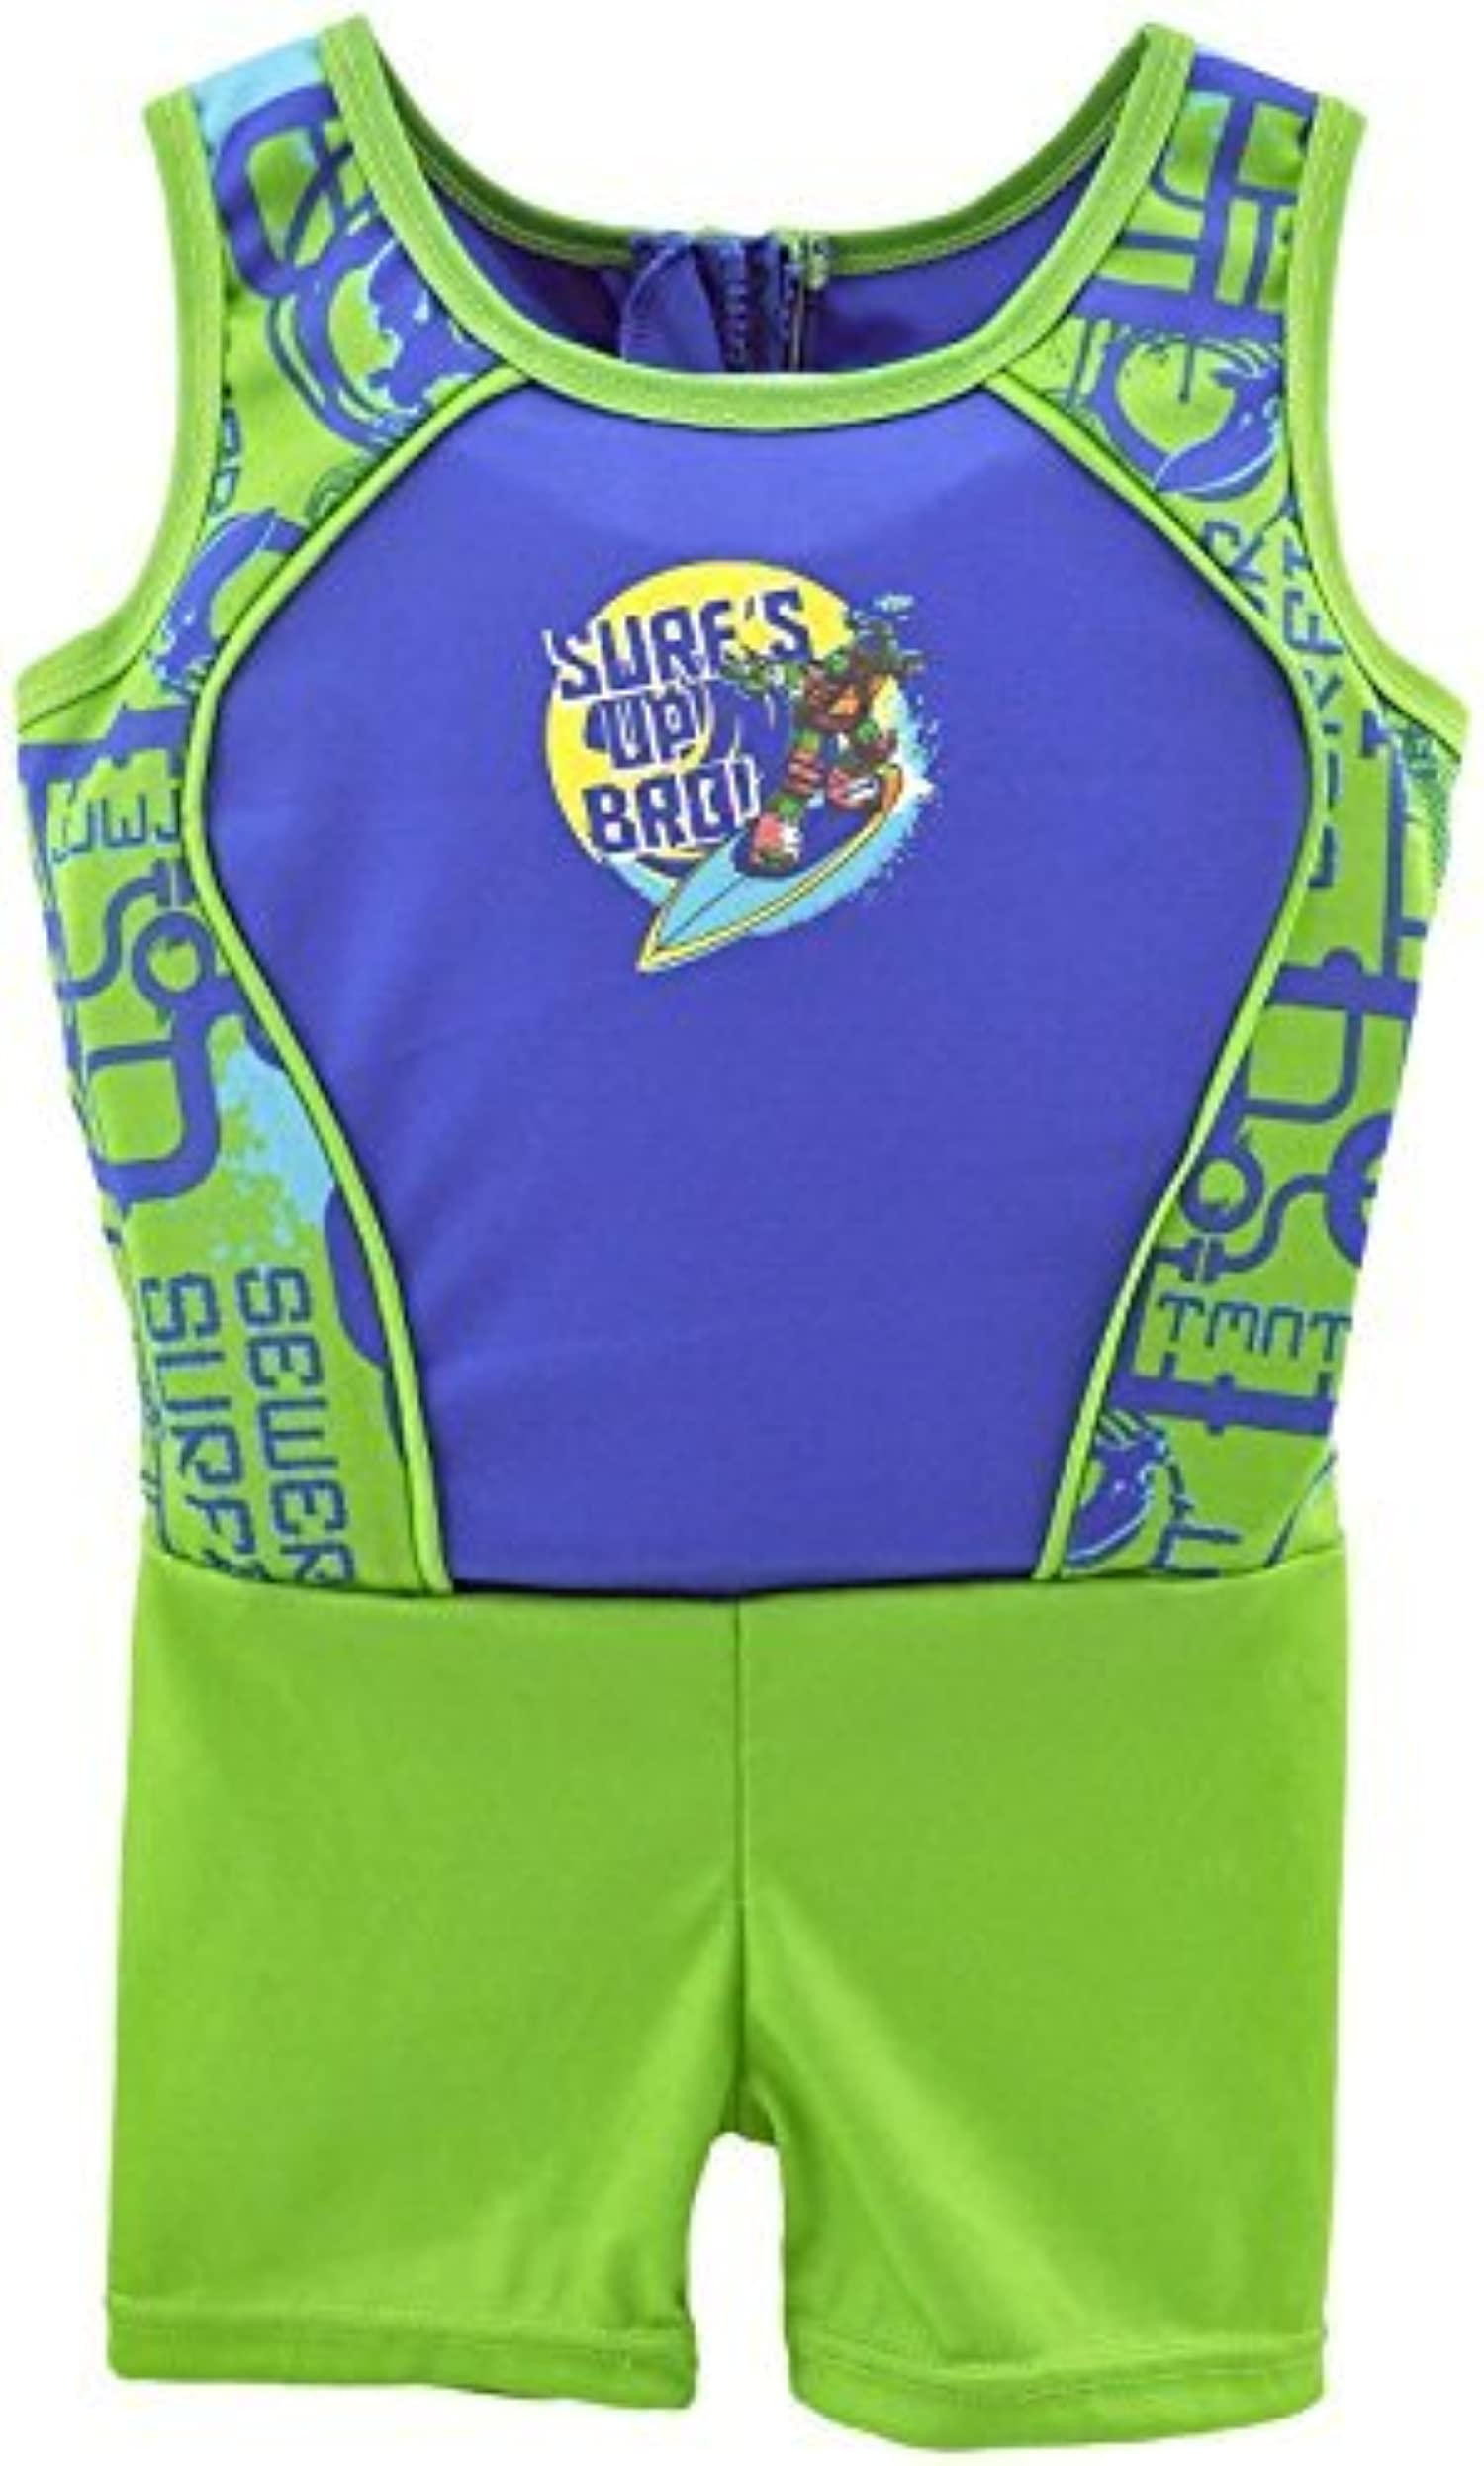 Learn To Swim 1 2 3 Suit - sharedreviews.com